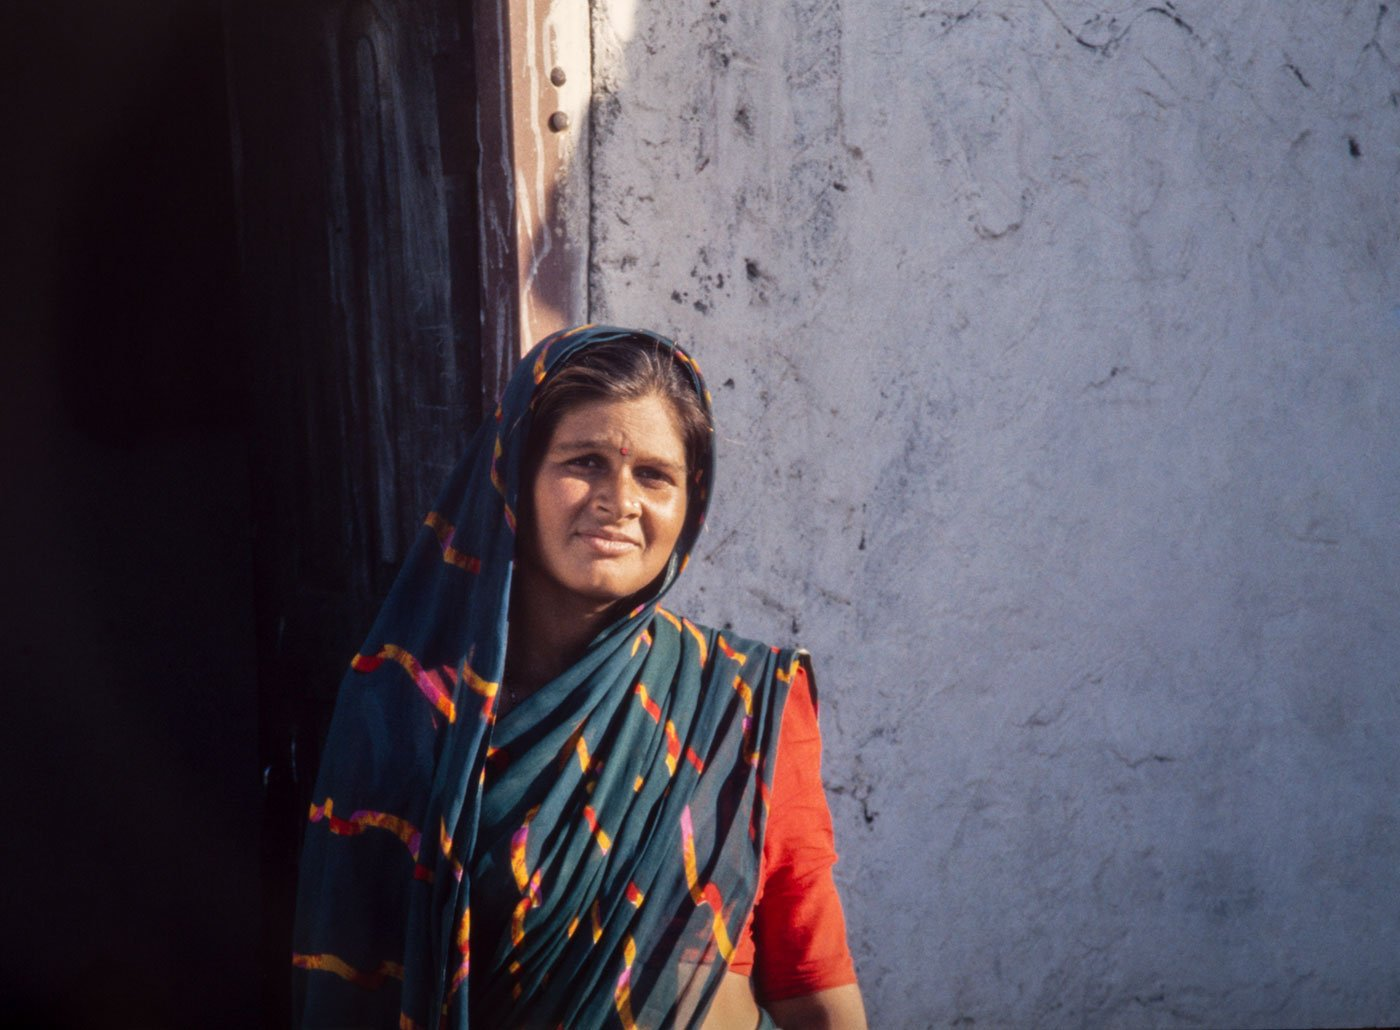 Anju Phulwaria, the persecuted sarpanch